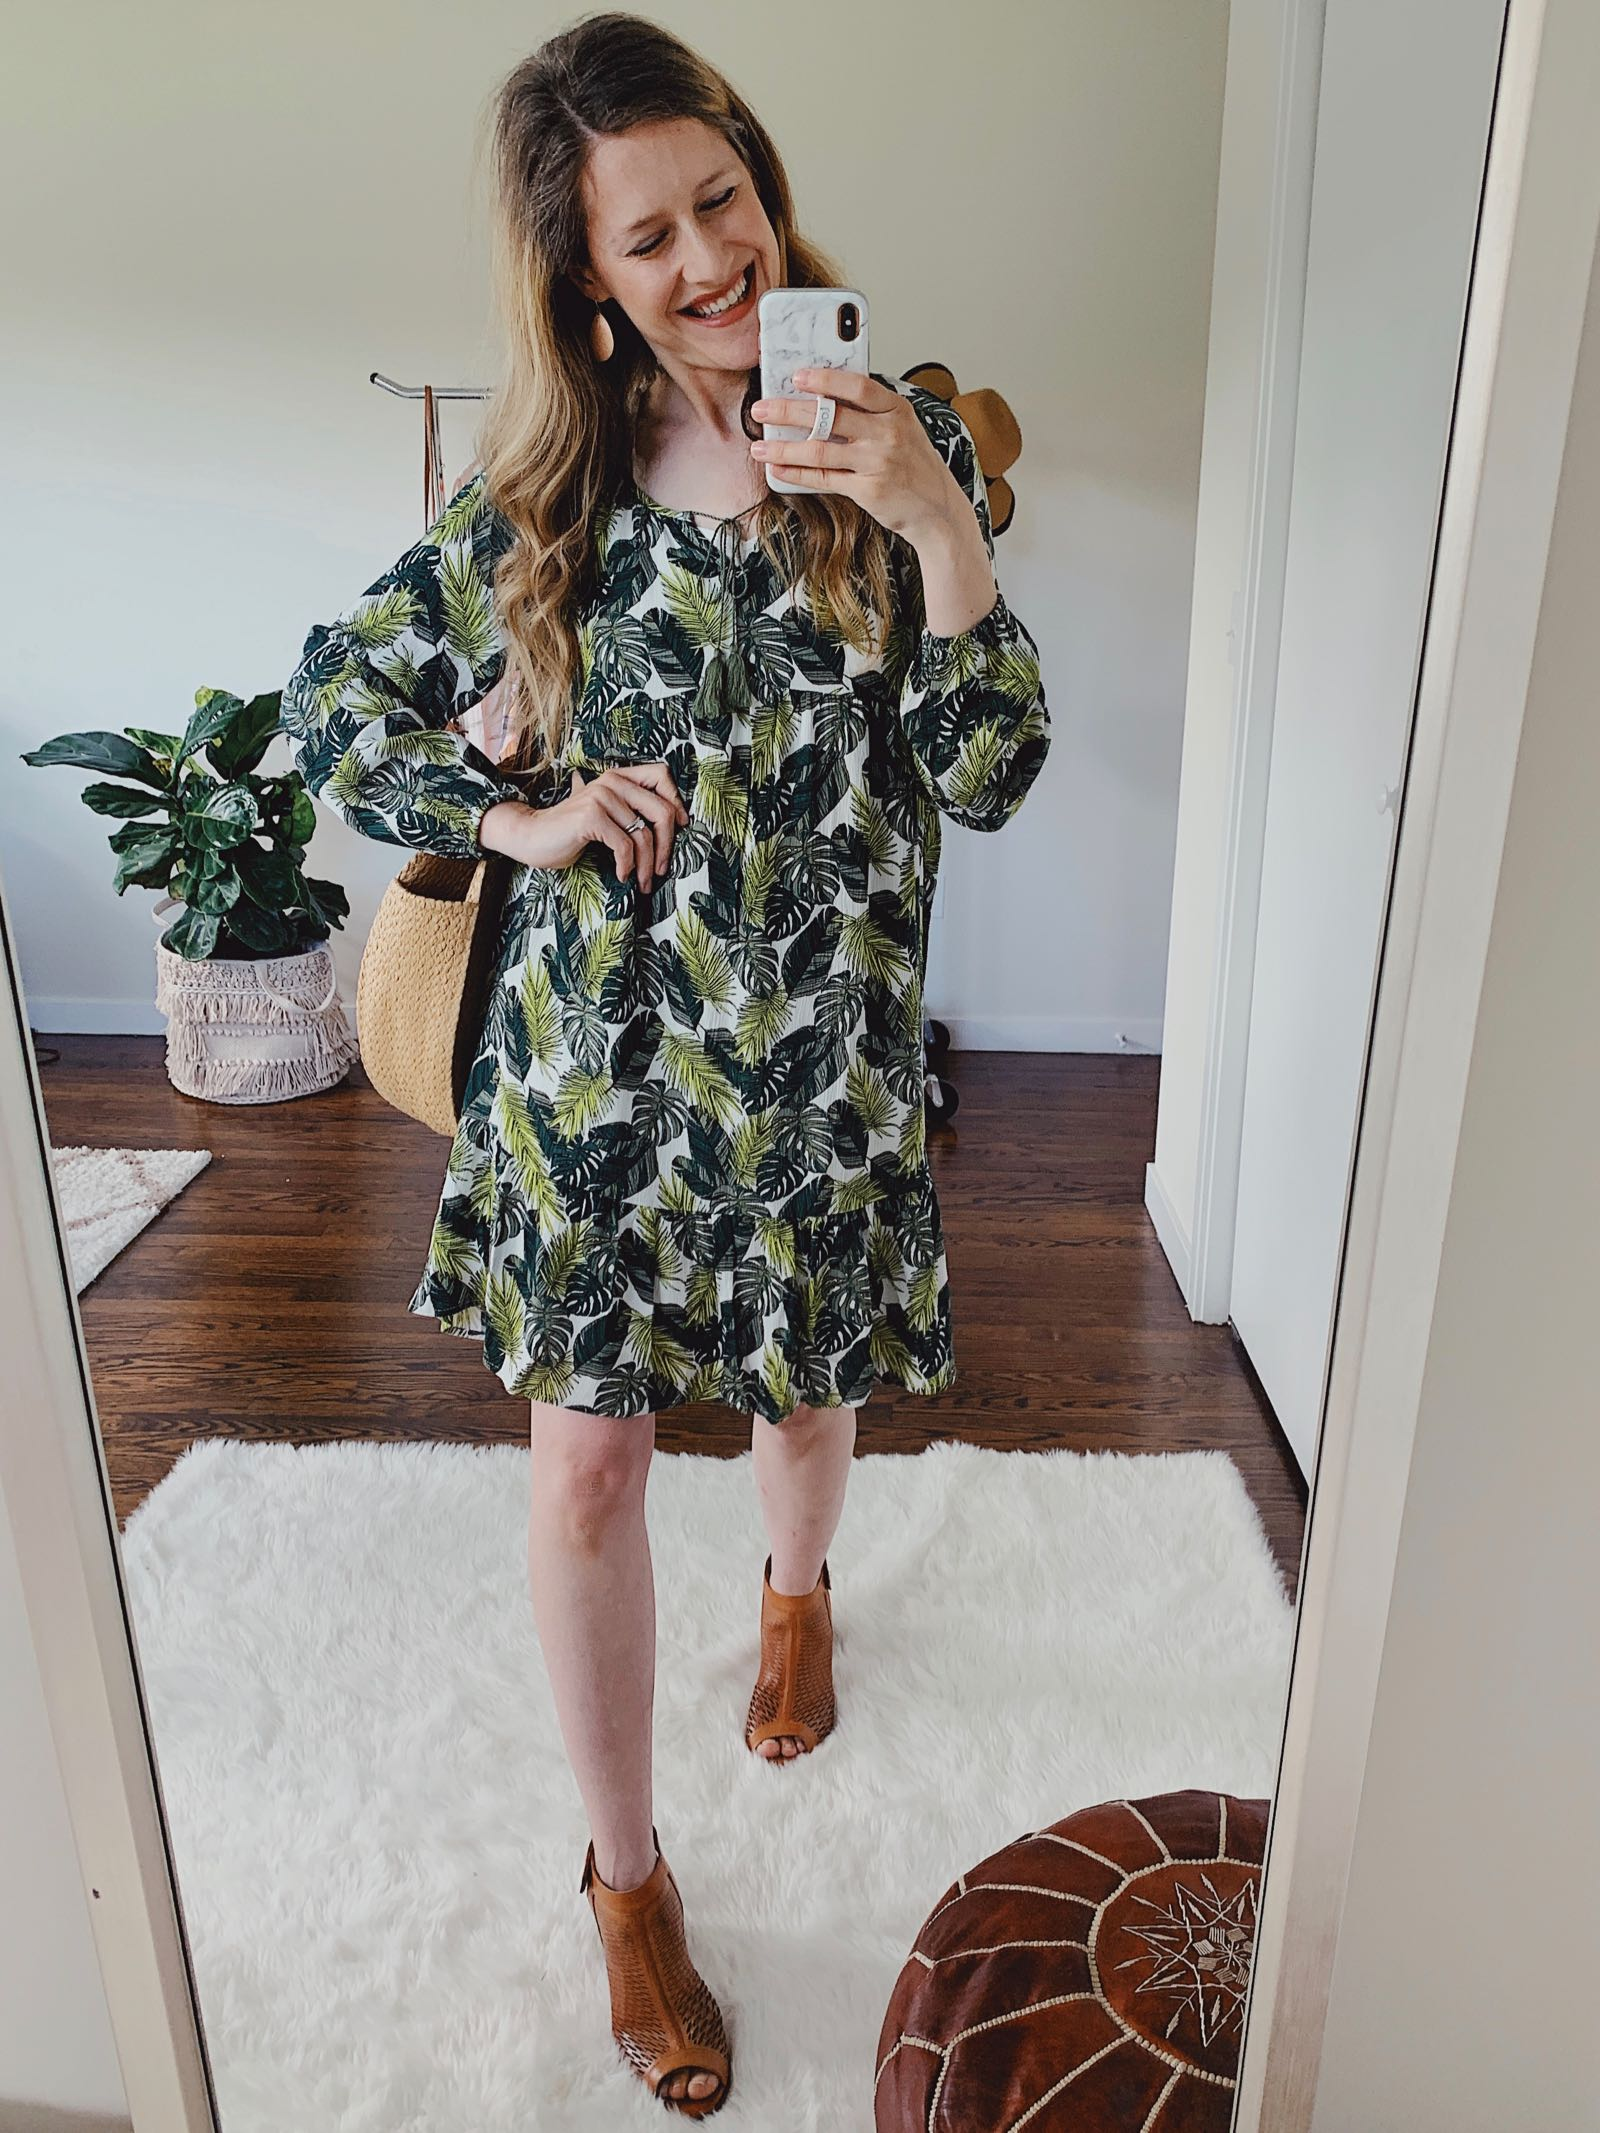 Palm print dress just $17 at Walmart!